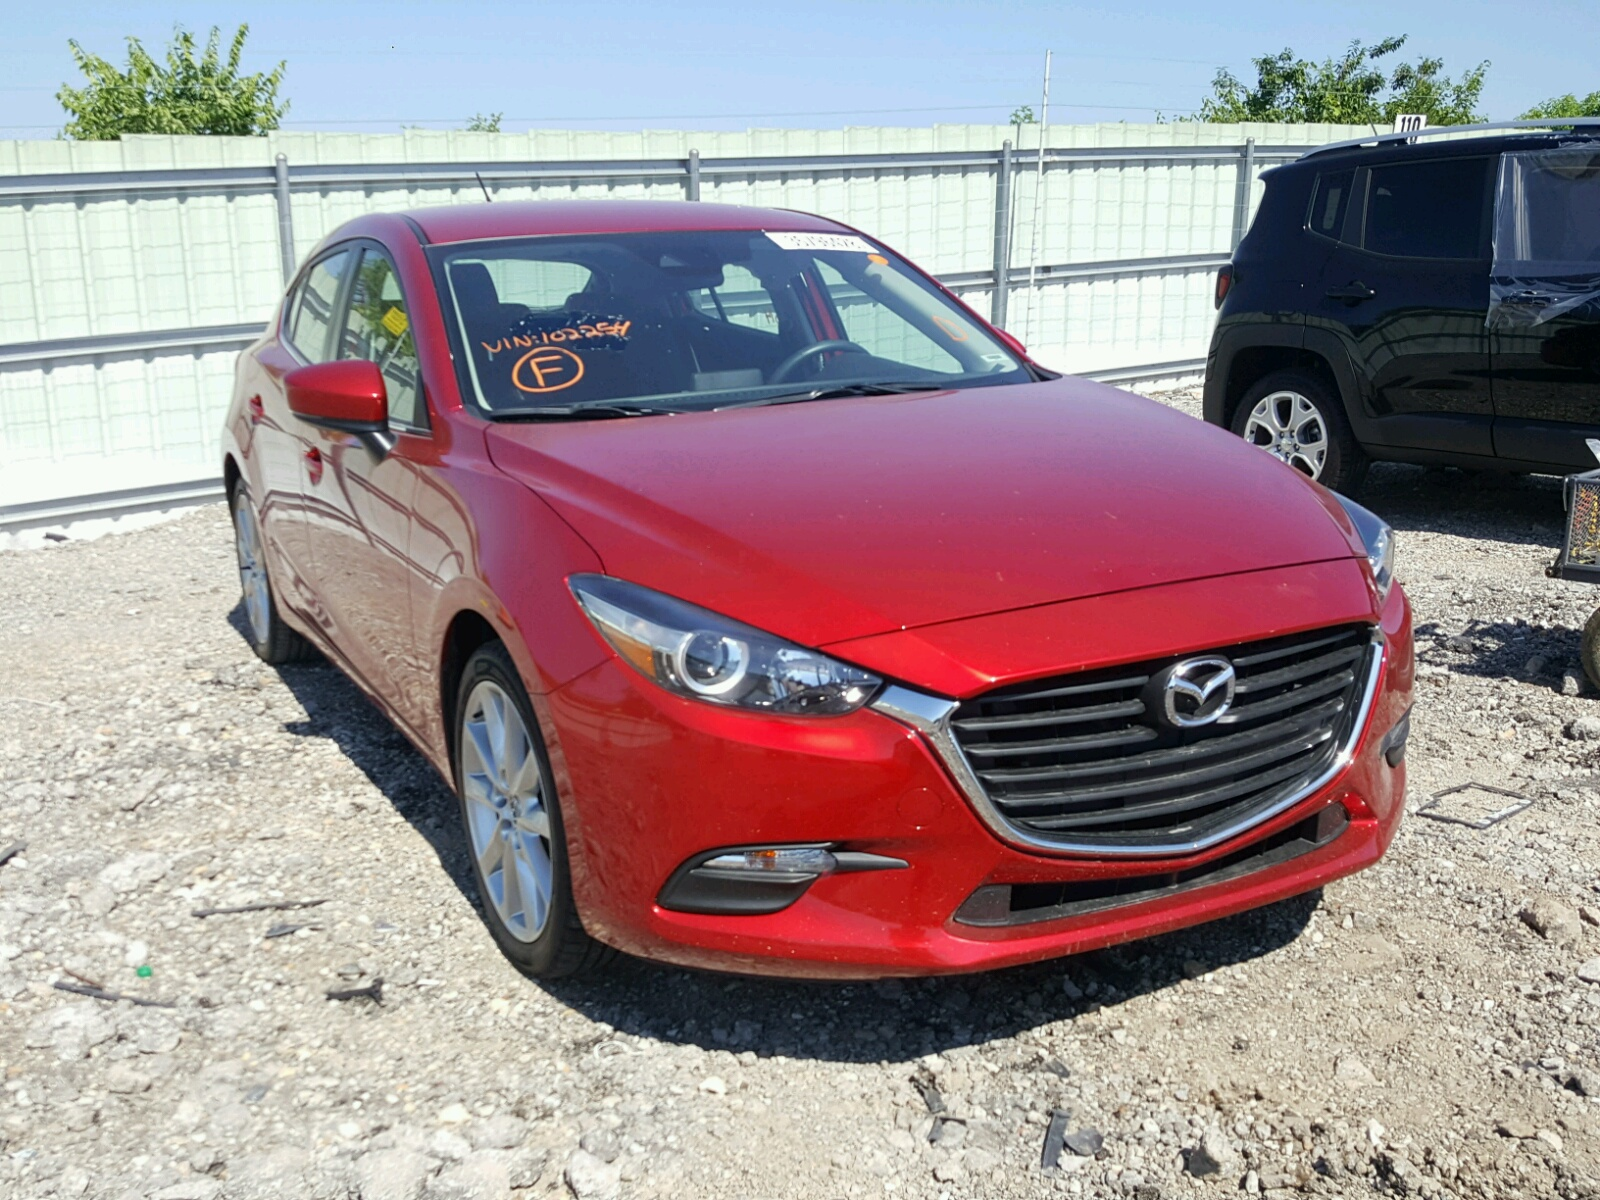 auctions auto sale in online city on right mazda i view of gray en carfinder ks kansas copart certificate title lot